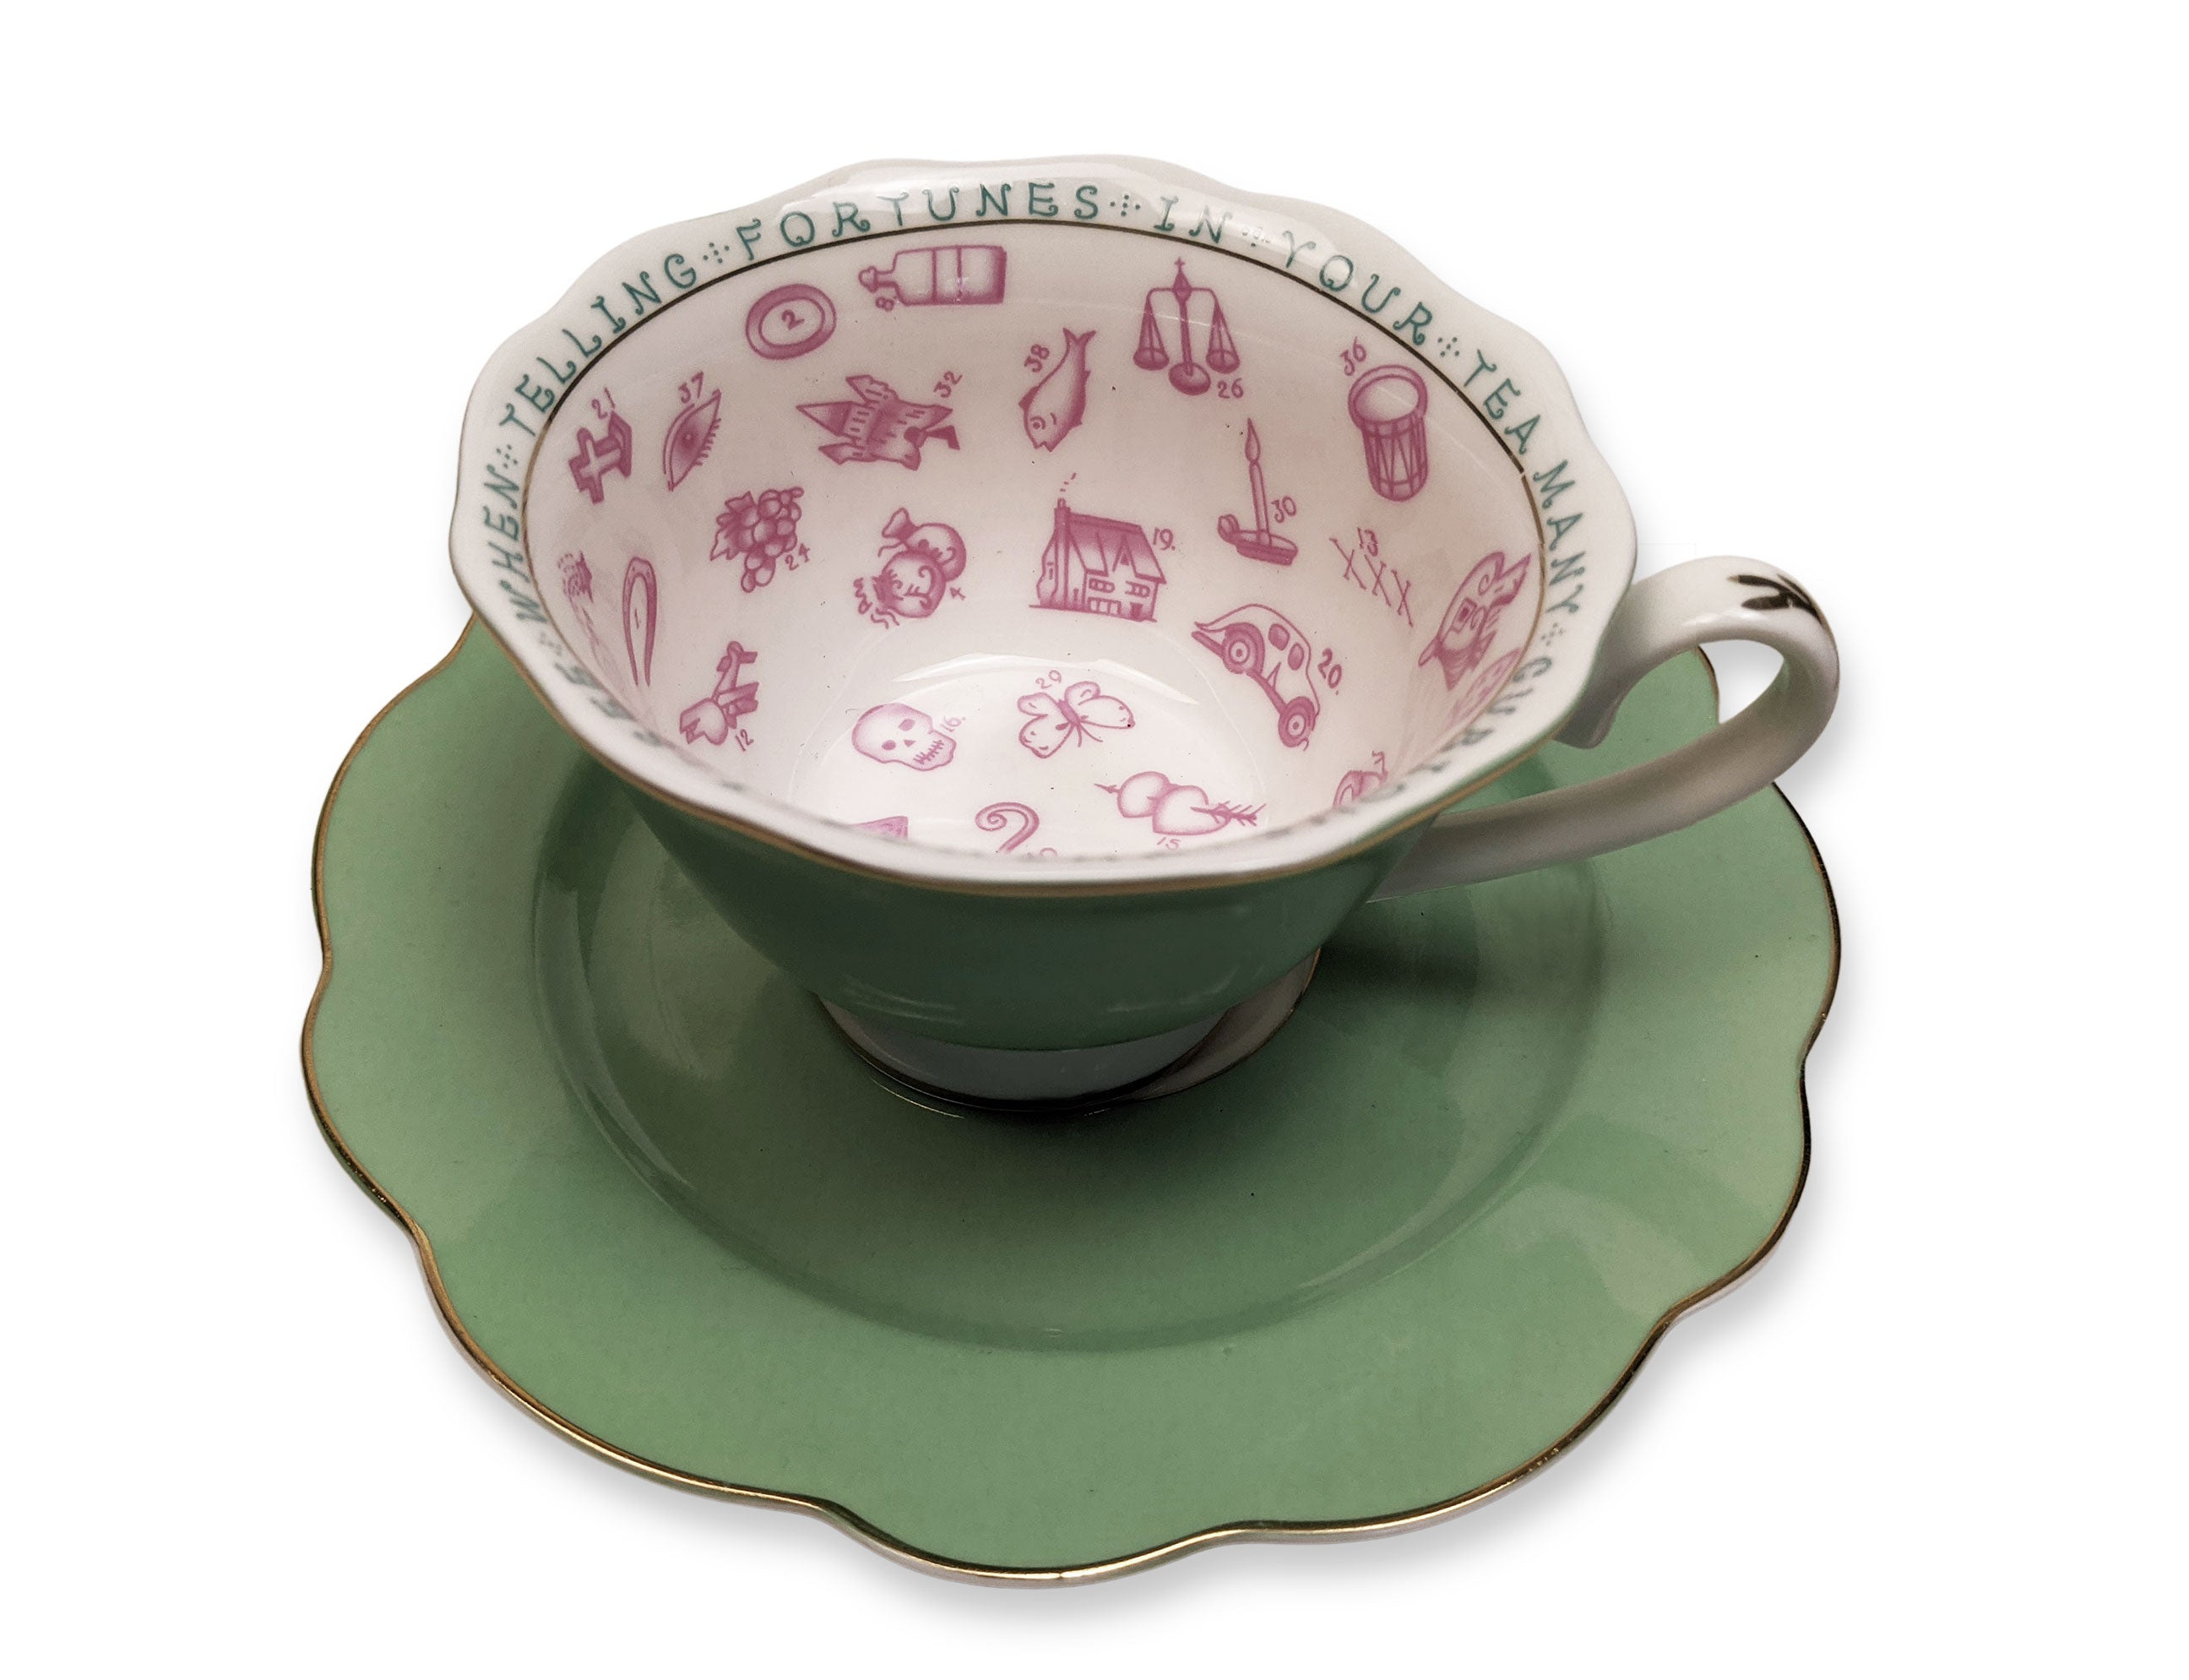 """Natalie"" 1920s Style Fortune Telling Teacup and Saucer Set"